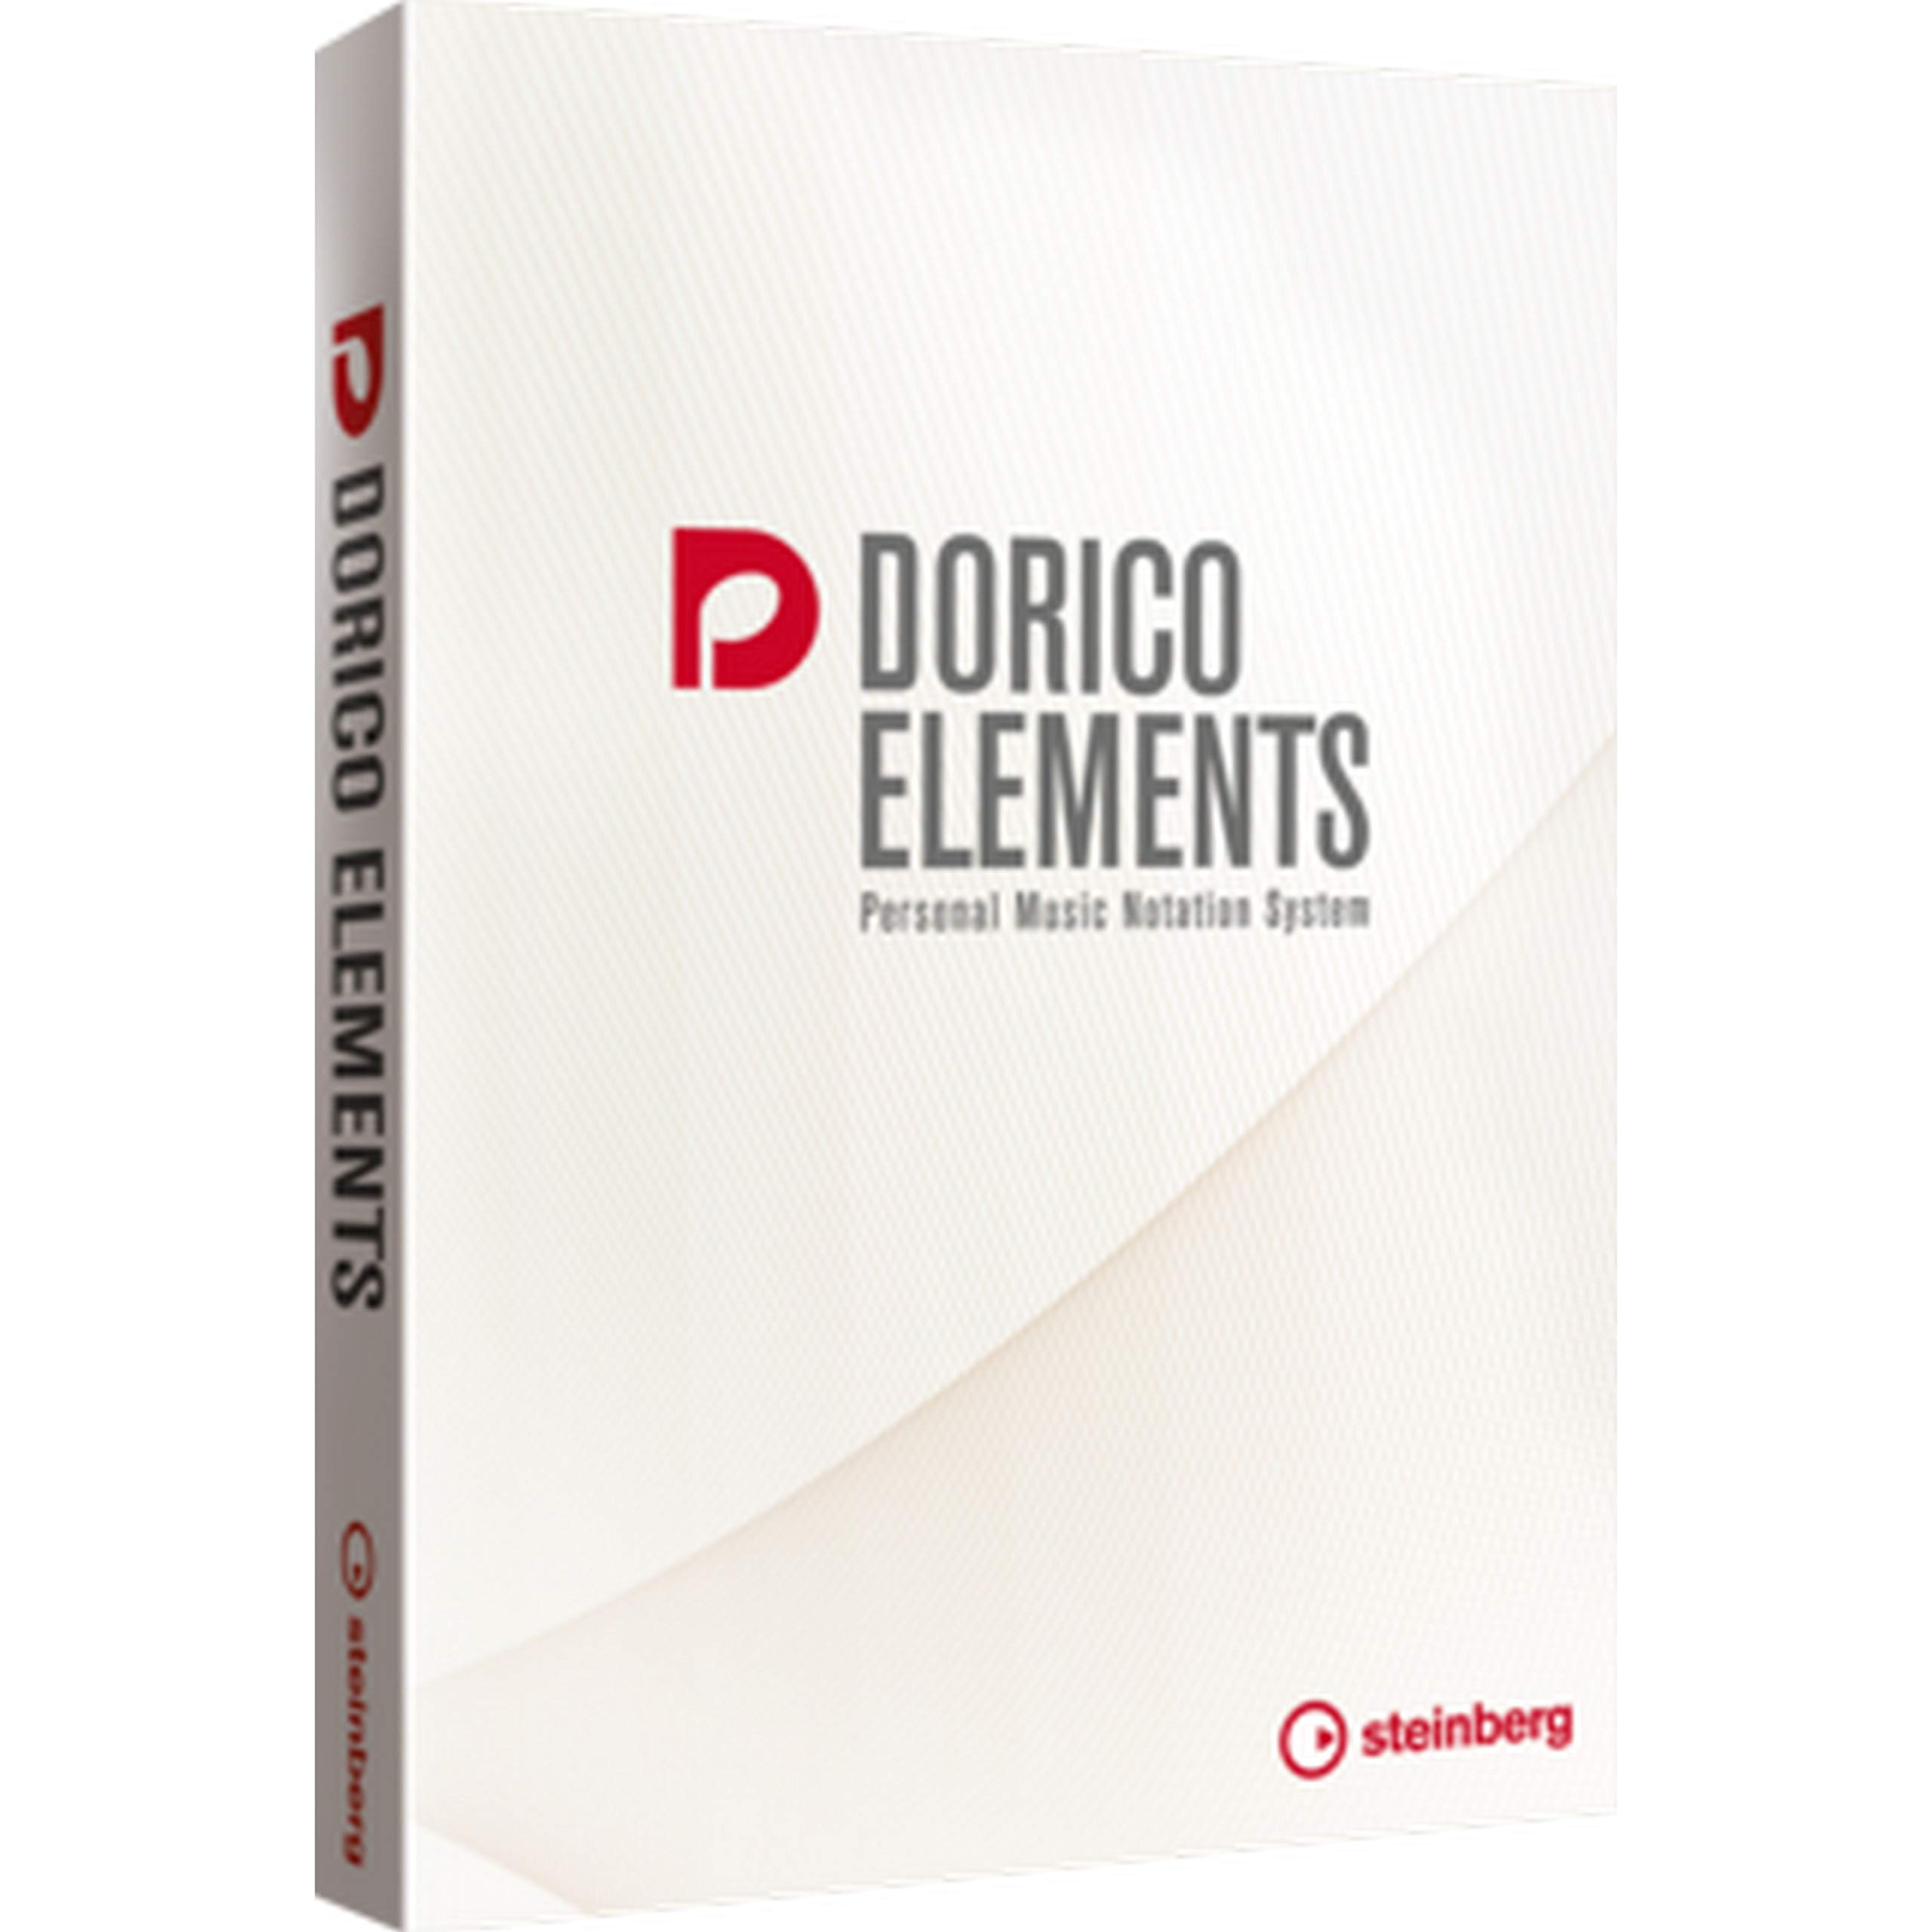 Steinberg Dorico Elements 2 Personal Music Notation Software, Boxed Version